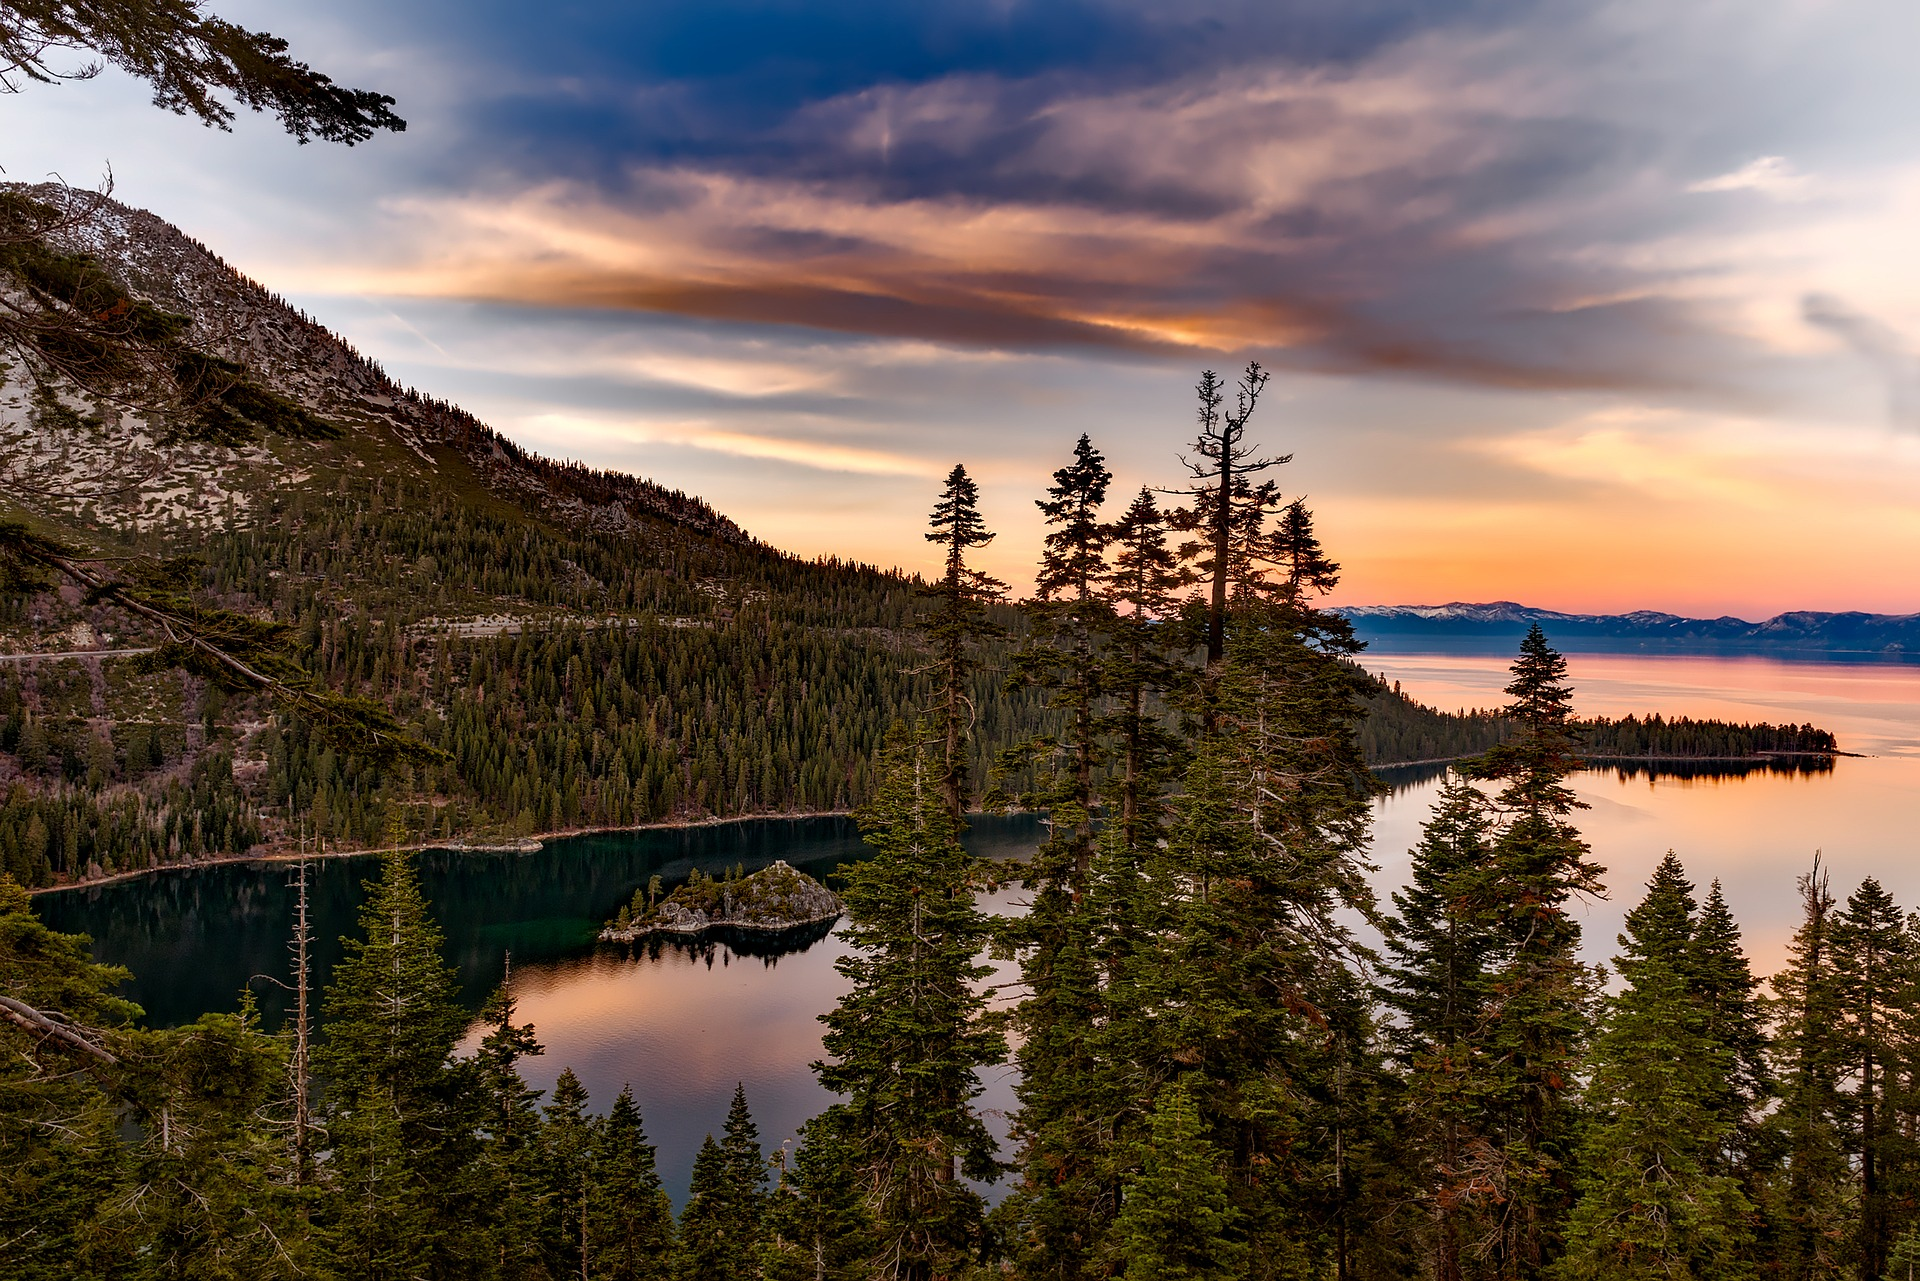 Lake Tahoe The Destination for a Perfect Trip